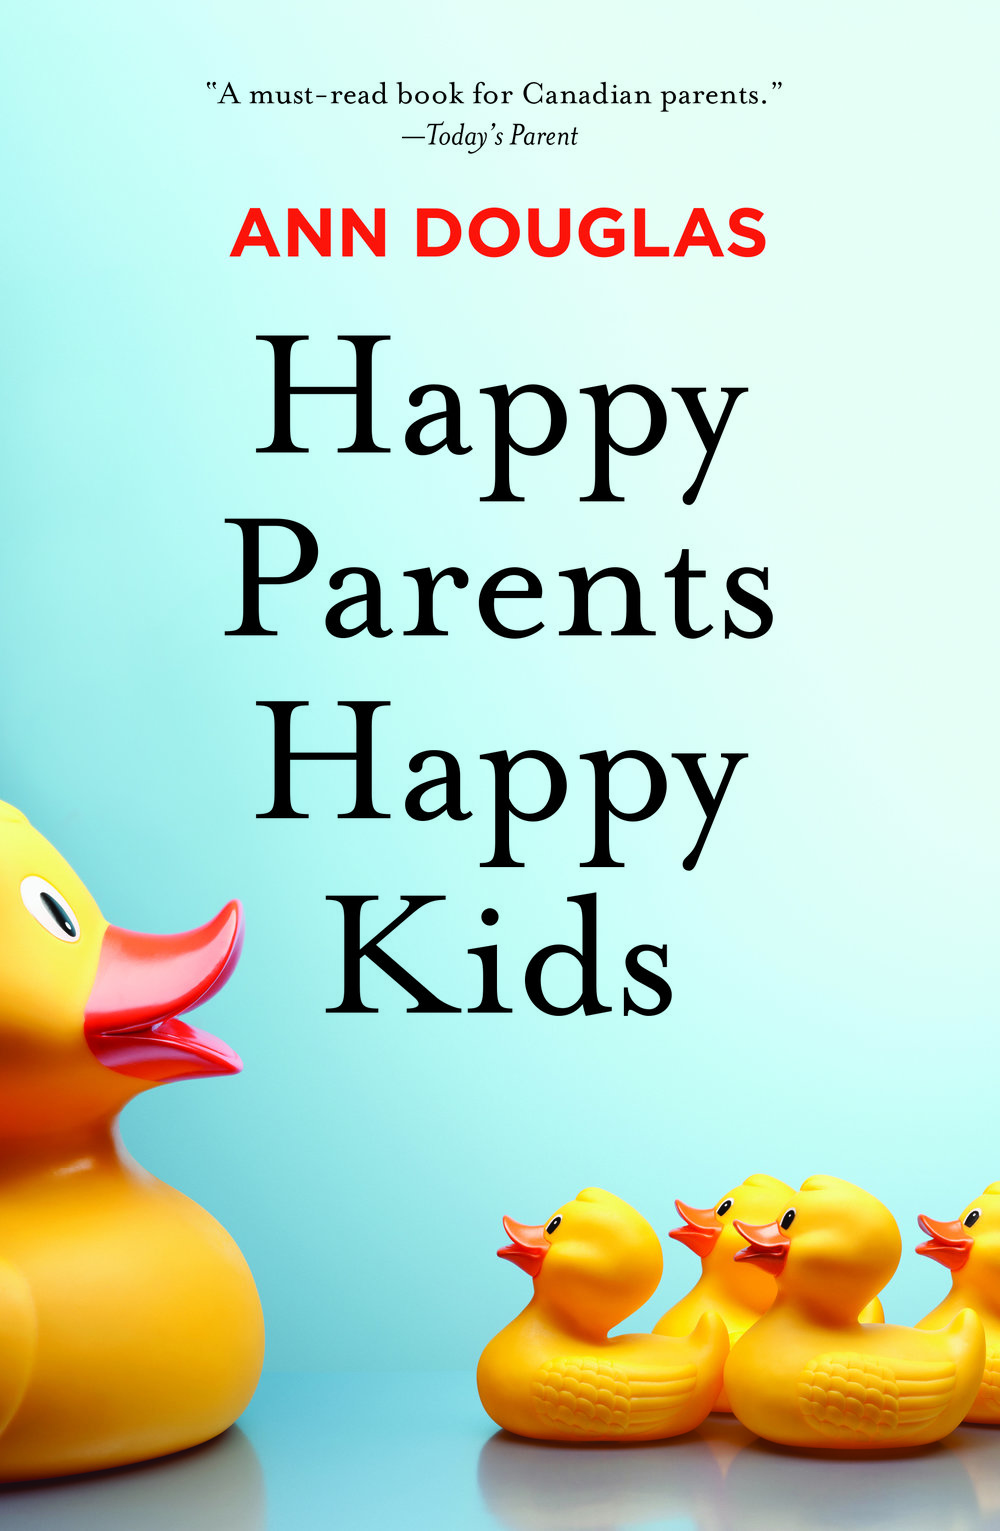 Happy Parents, Happy Kids  — the latest book by parenting author Ann Douglas — has just been published by HarperCollins Canada.